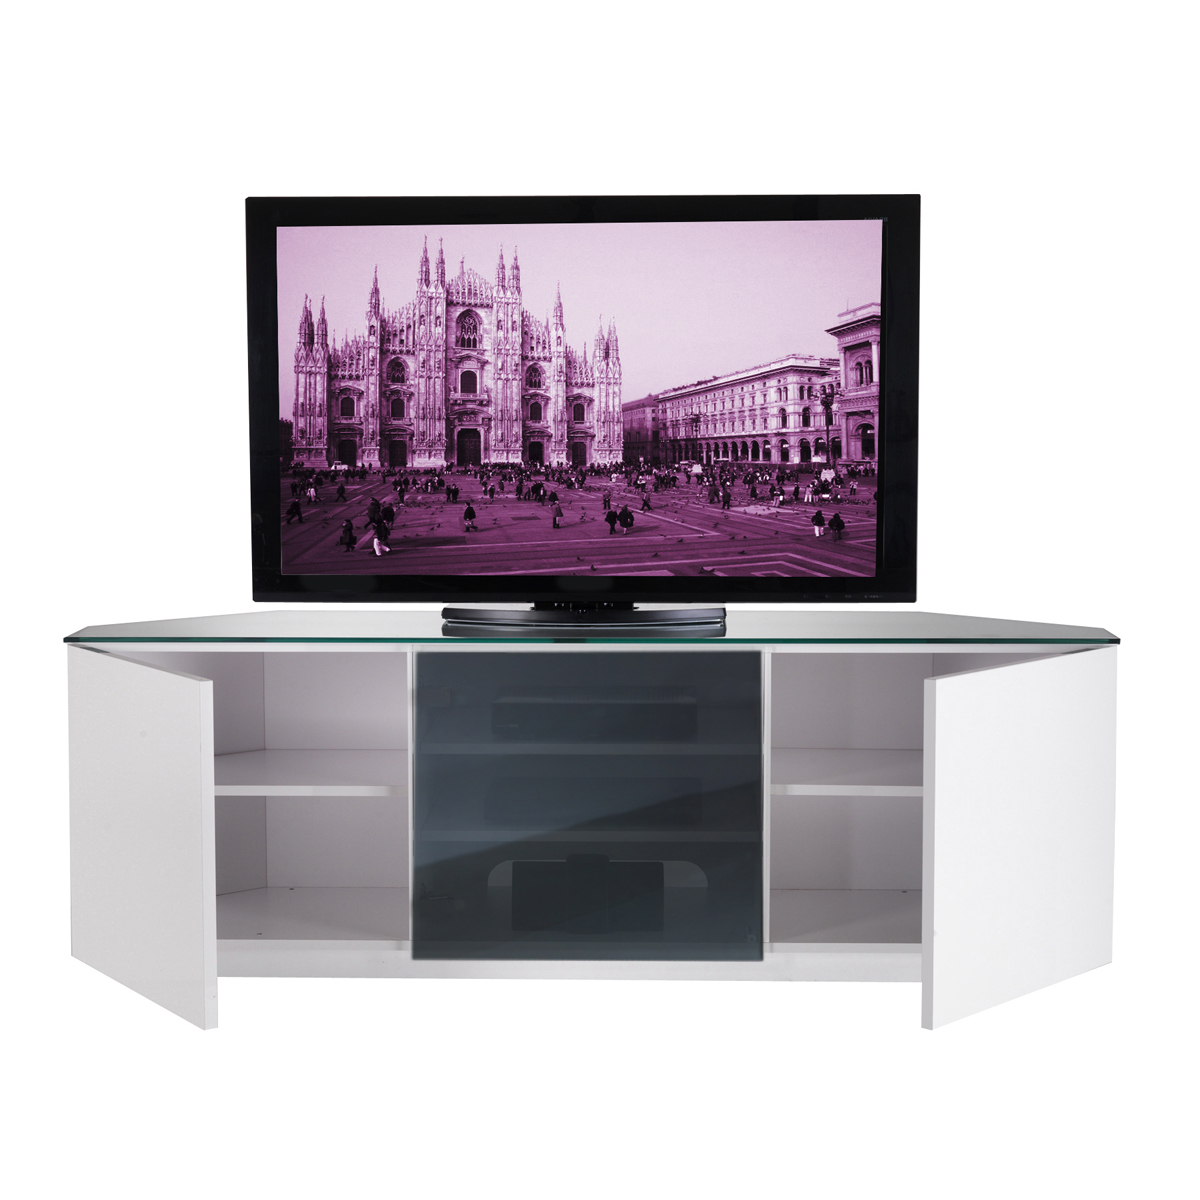 Ukcf Milan White Gloss & Black Glass Corner Tv Stand 150Cm Regarding Fashionable White High Gloss Corner Tv Unit (Gallery 12 of 20)